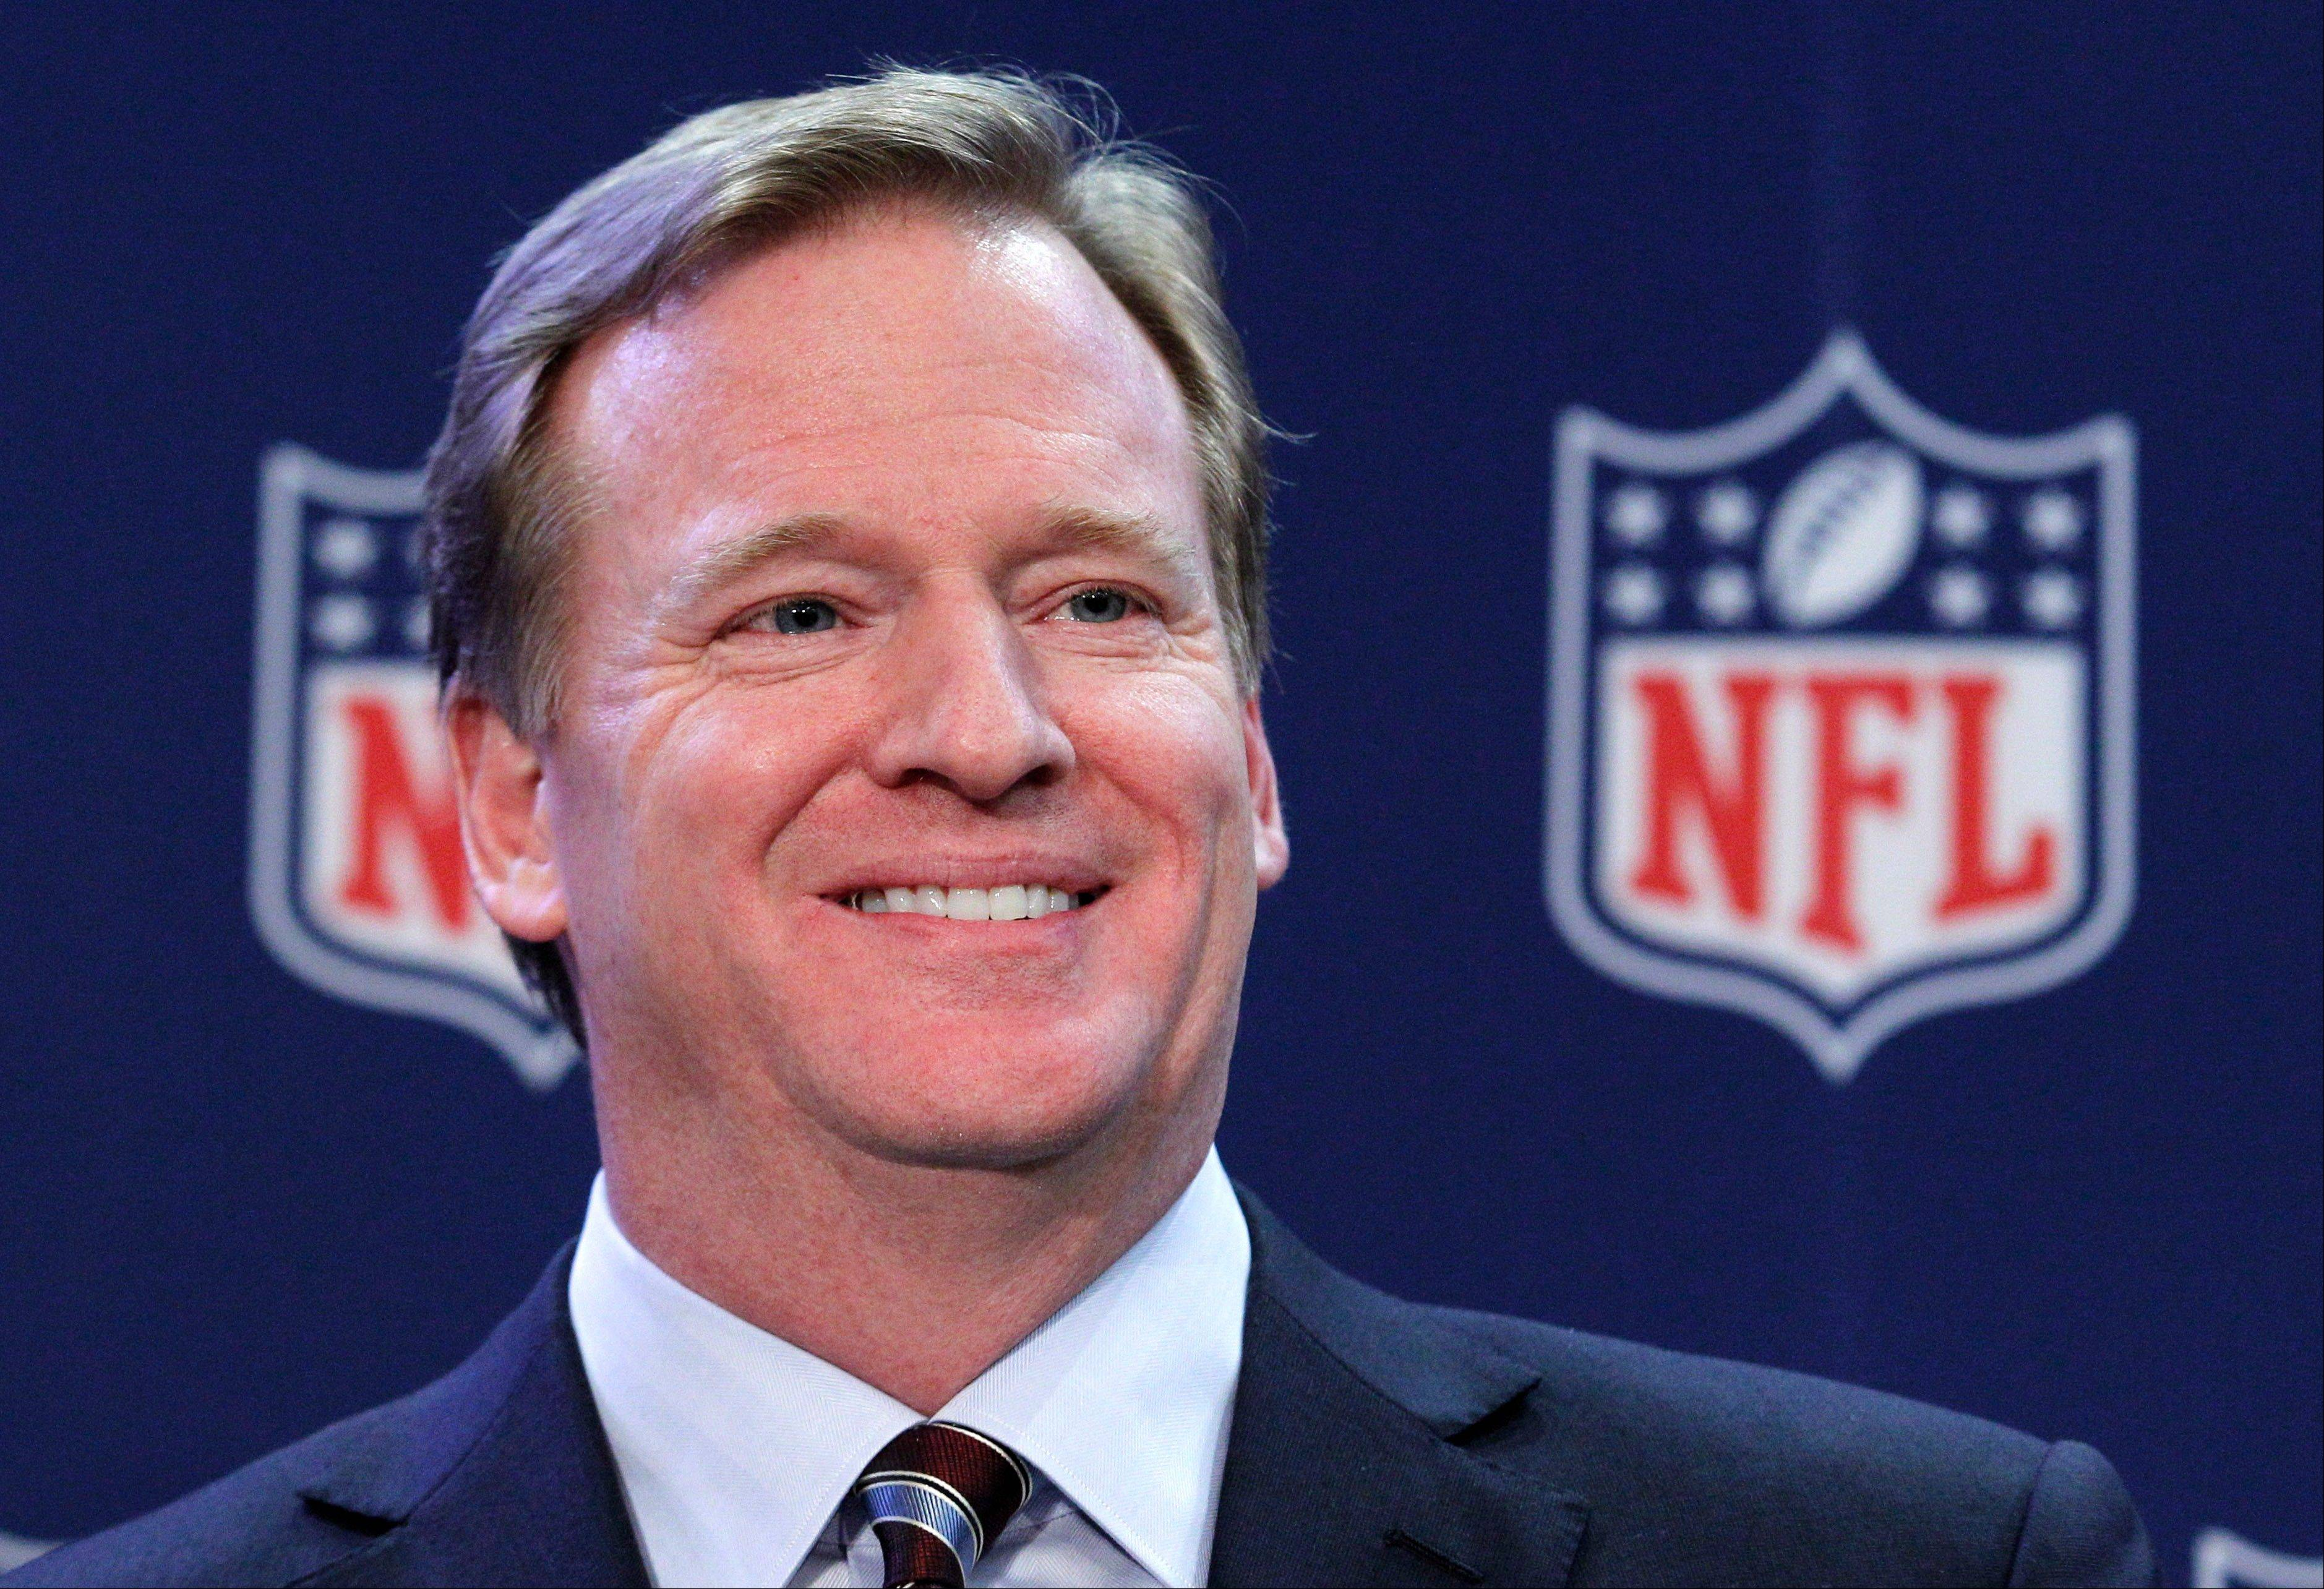 Associated Press/Dec. 12, 2012NFL Commissioner Roger Goodell smiles during a news conference after the NFL owners meeting in Irving, Texas. Goodell was paid $29.49 million by NFL owners in 2011, nearly triple his compensation from the previous year. Goodell earned $11.6 million in 2010.